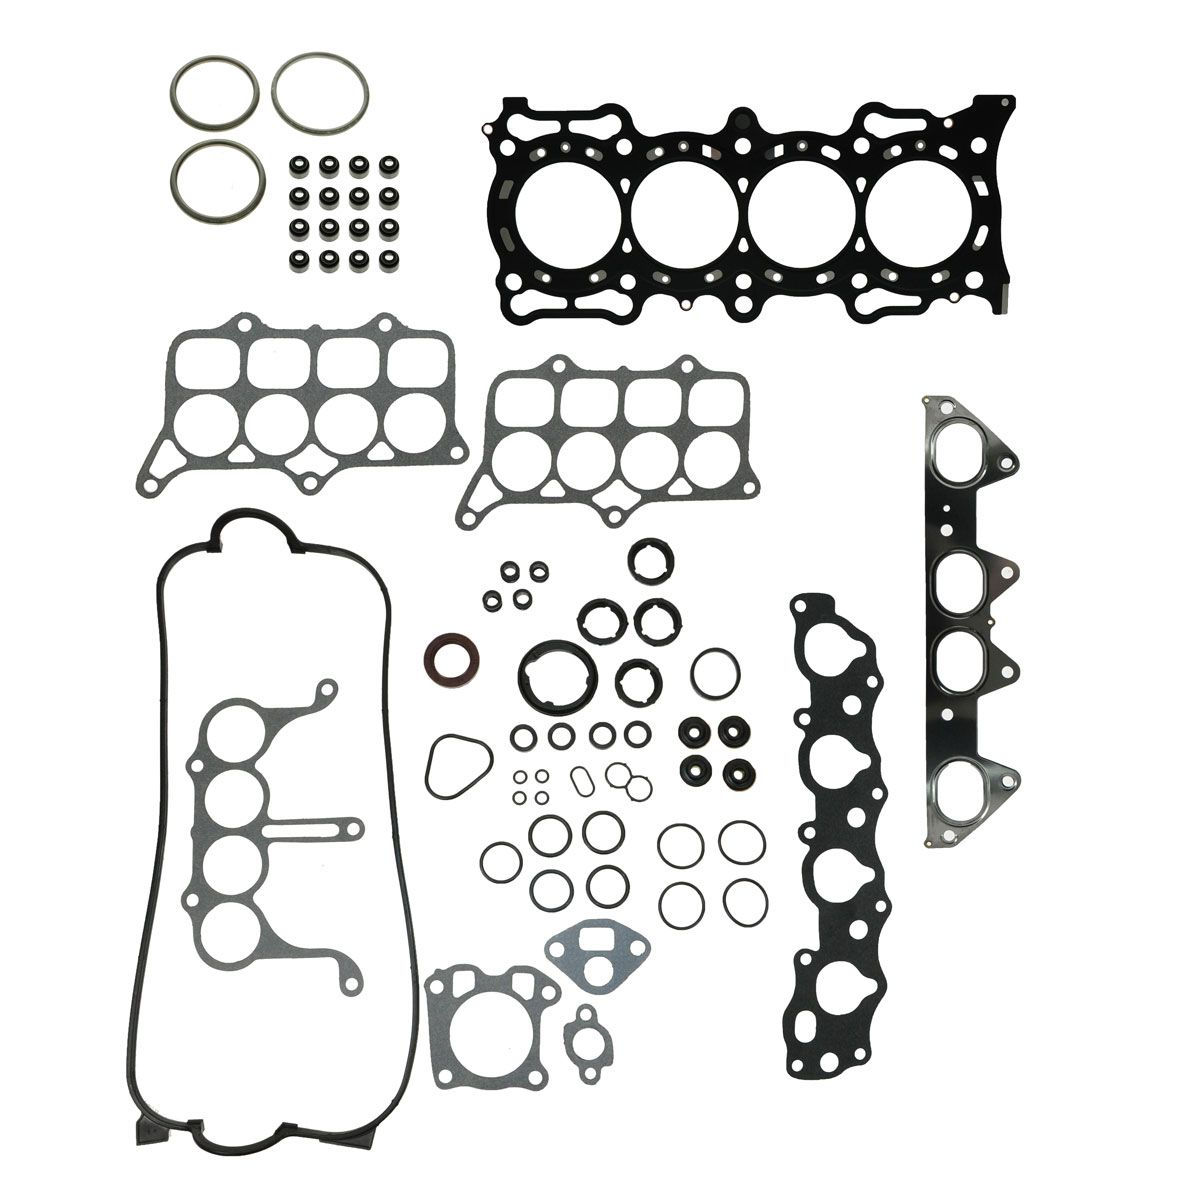 Engine Head Intake Exhaust Manifold Gasket Set For Honda